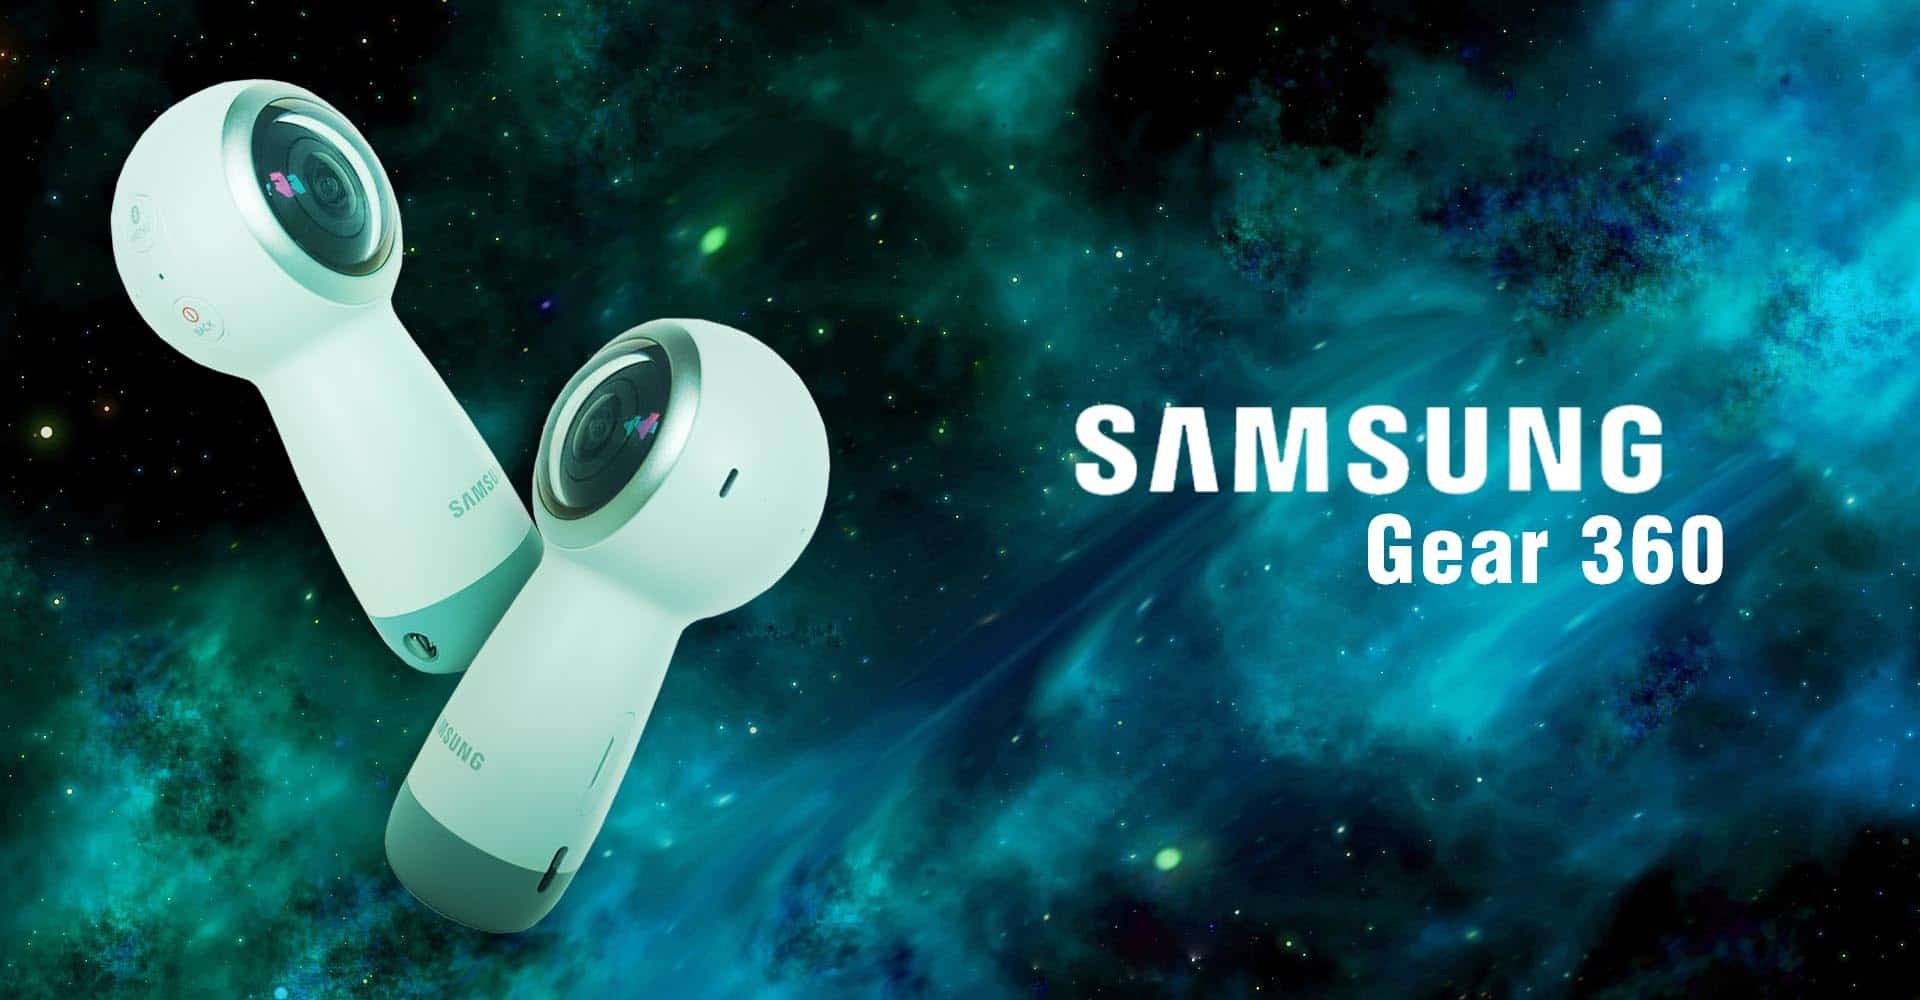 Samsung Gear 360 - Seeing from a different perspective